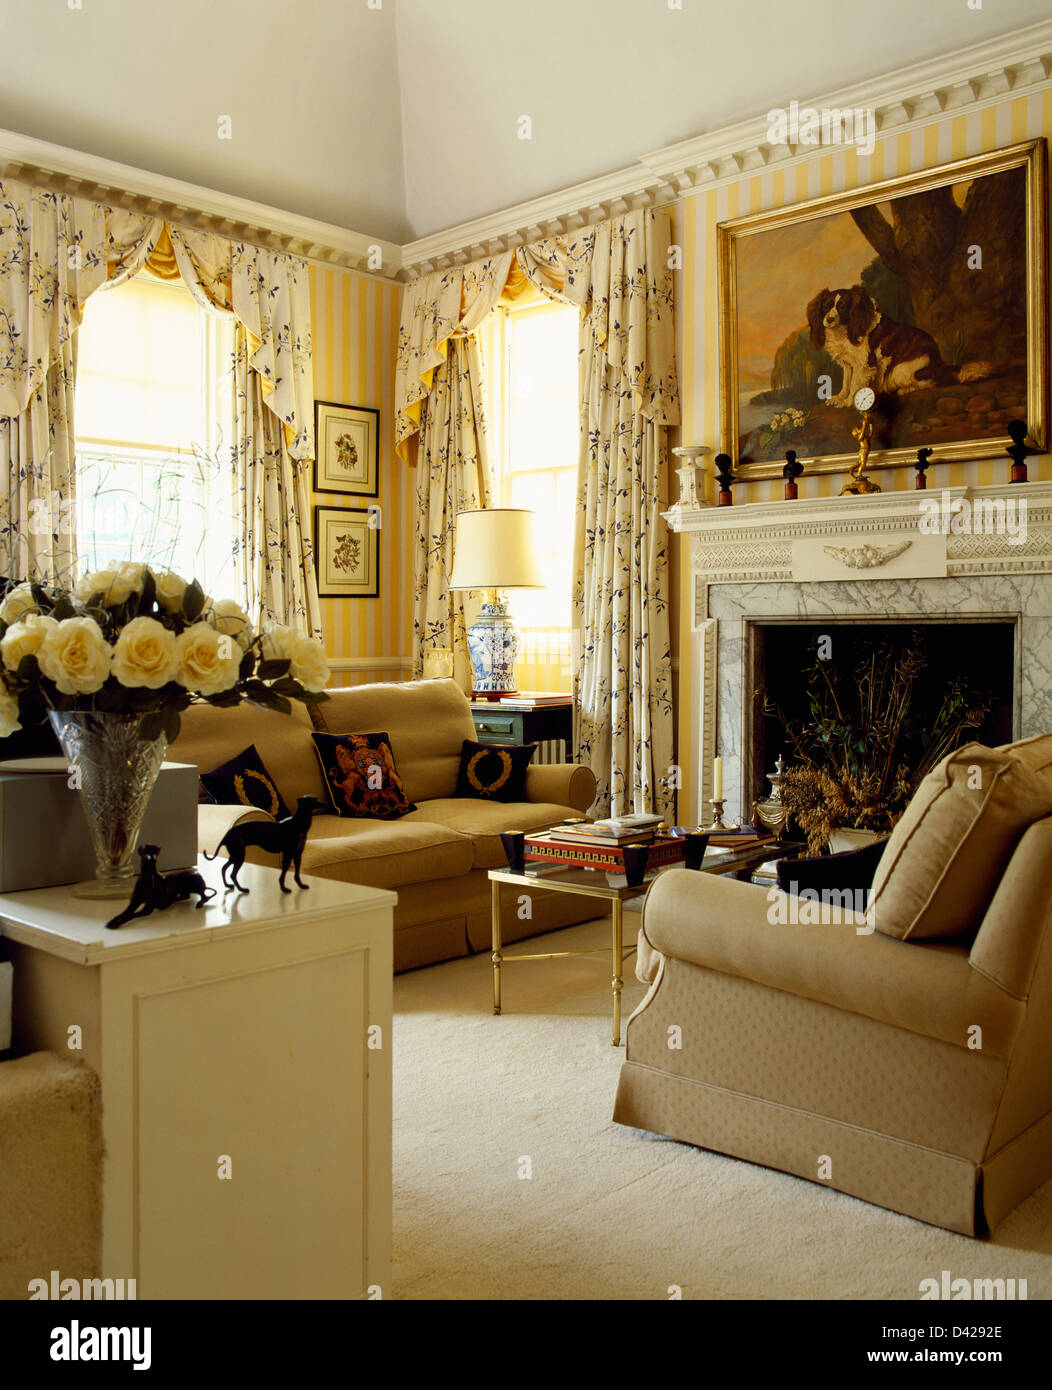 traditional armchairs for living room open concept kitchen beige sofas and cream carpet in yellow country ...